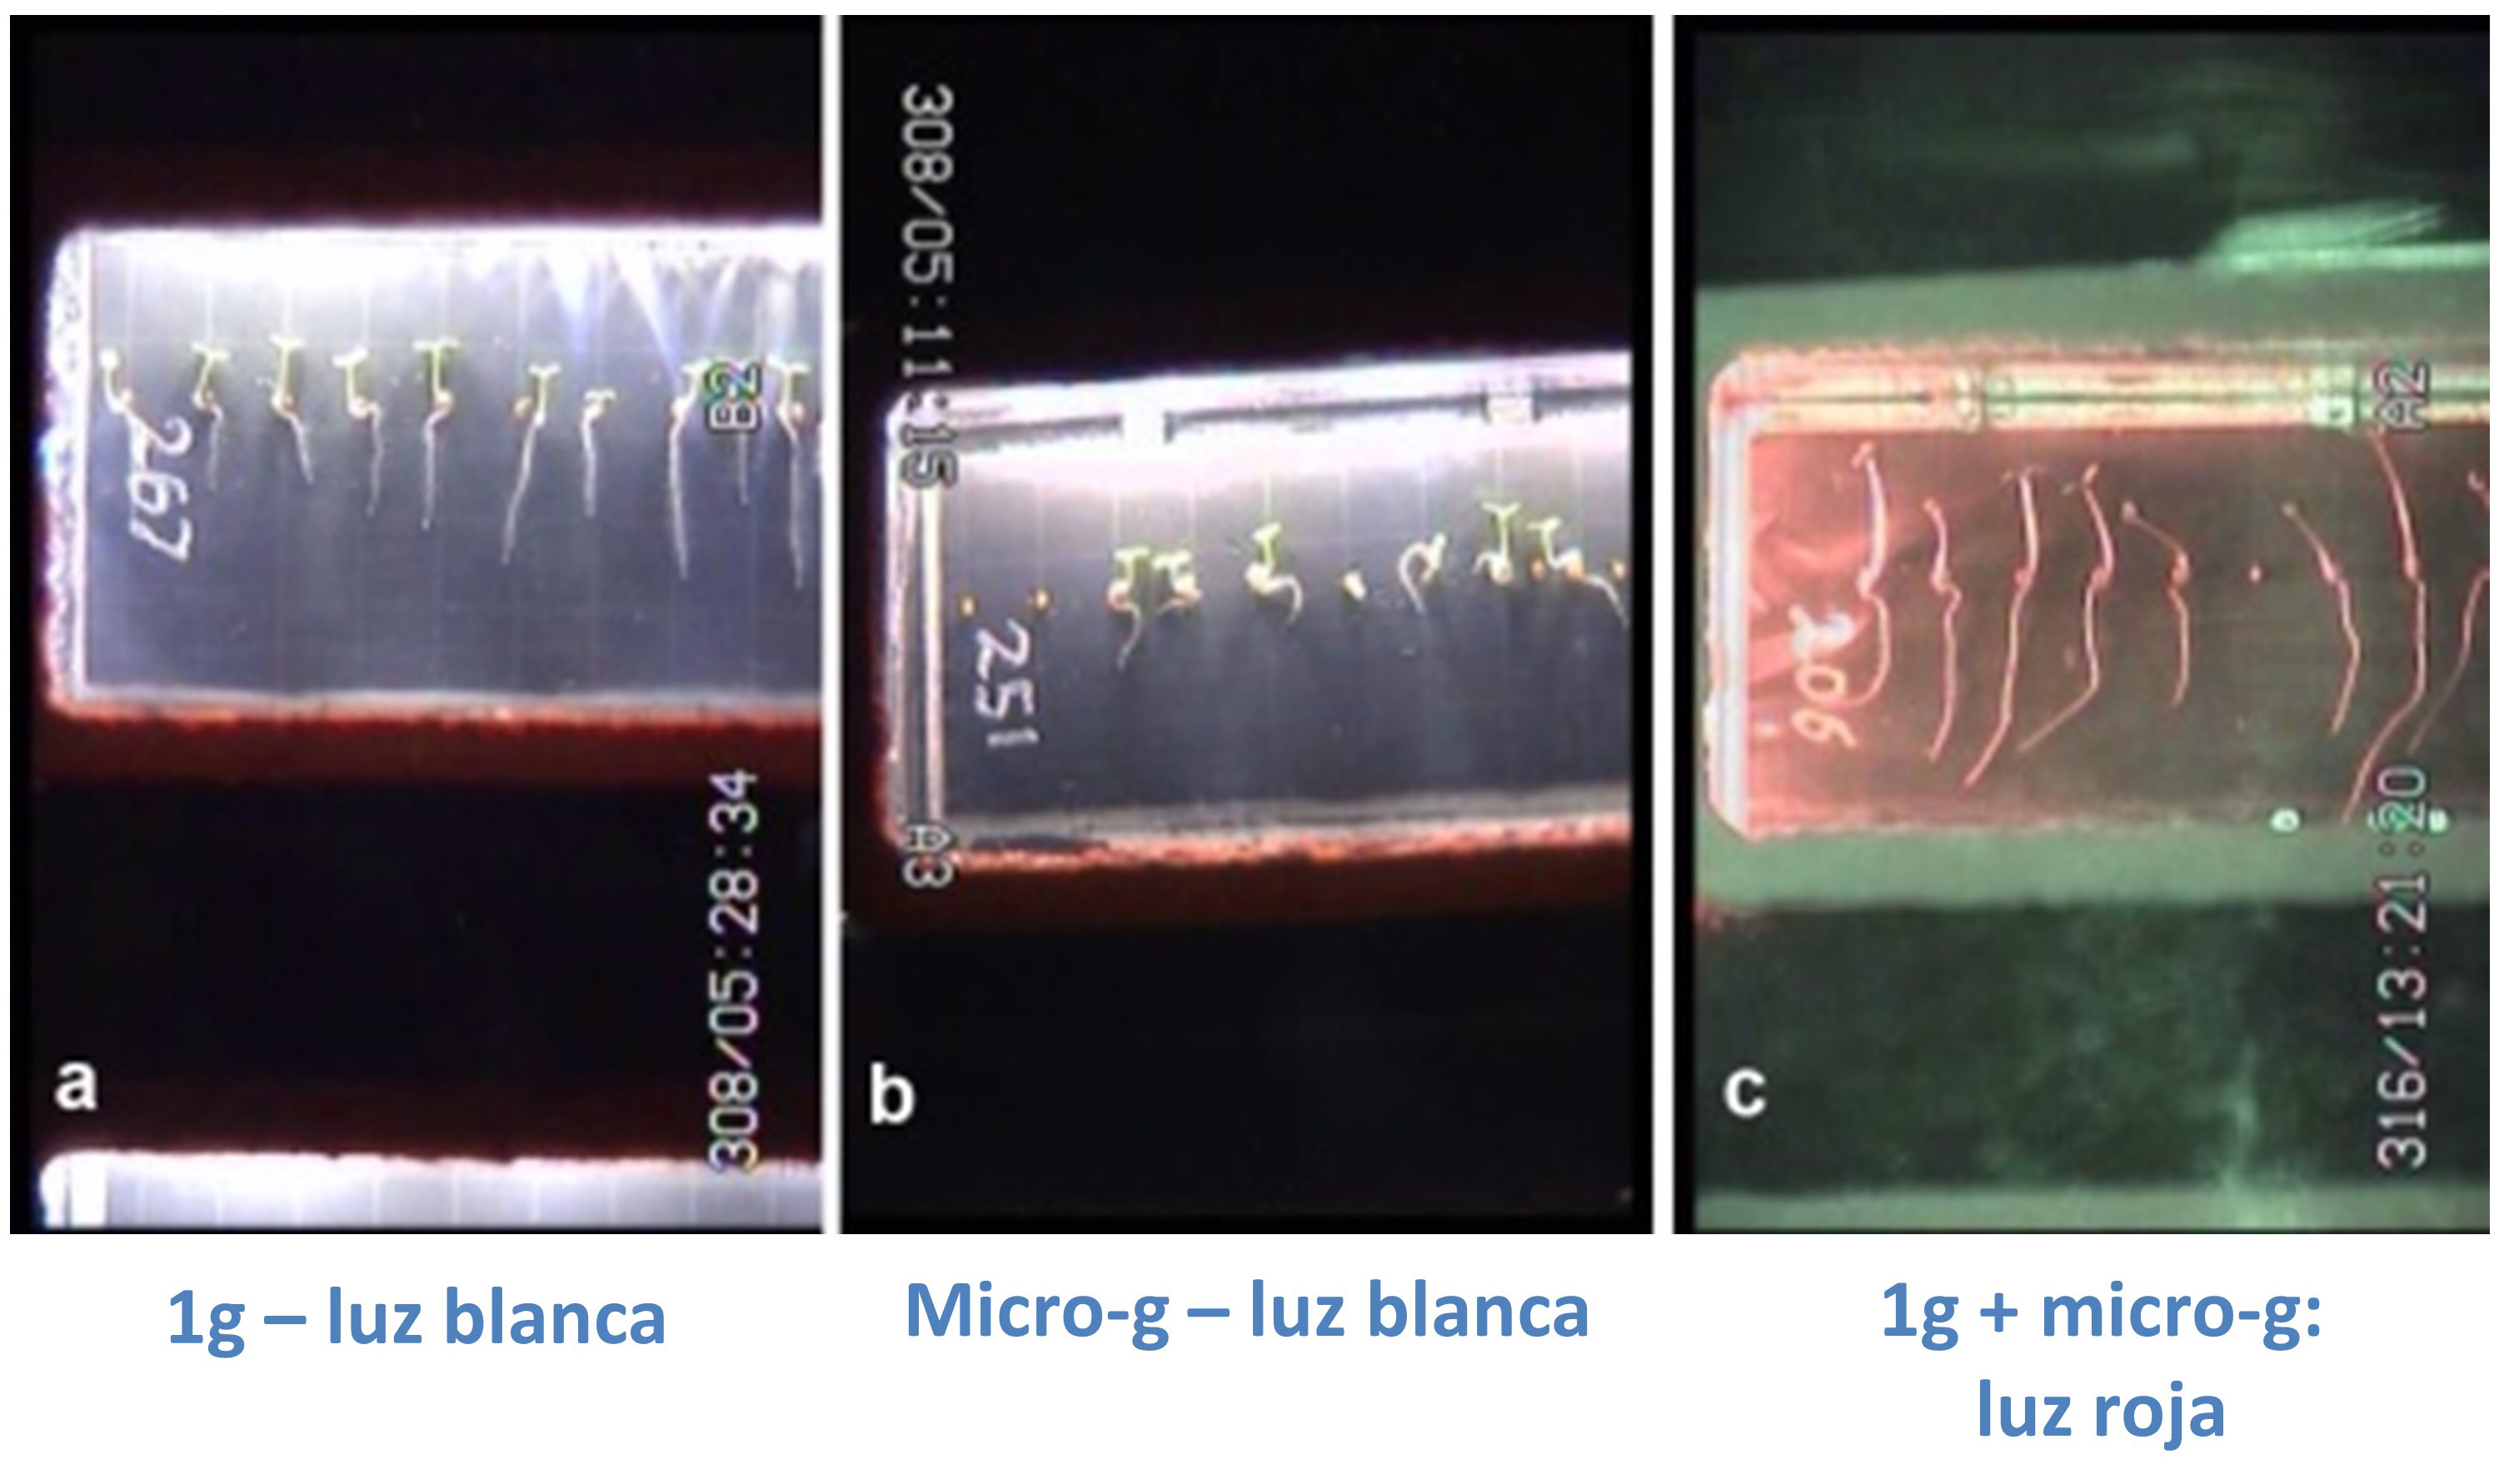 Images taken from Seedling Growth SG-2 experiment